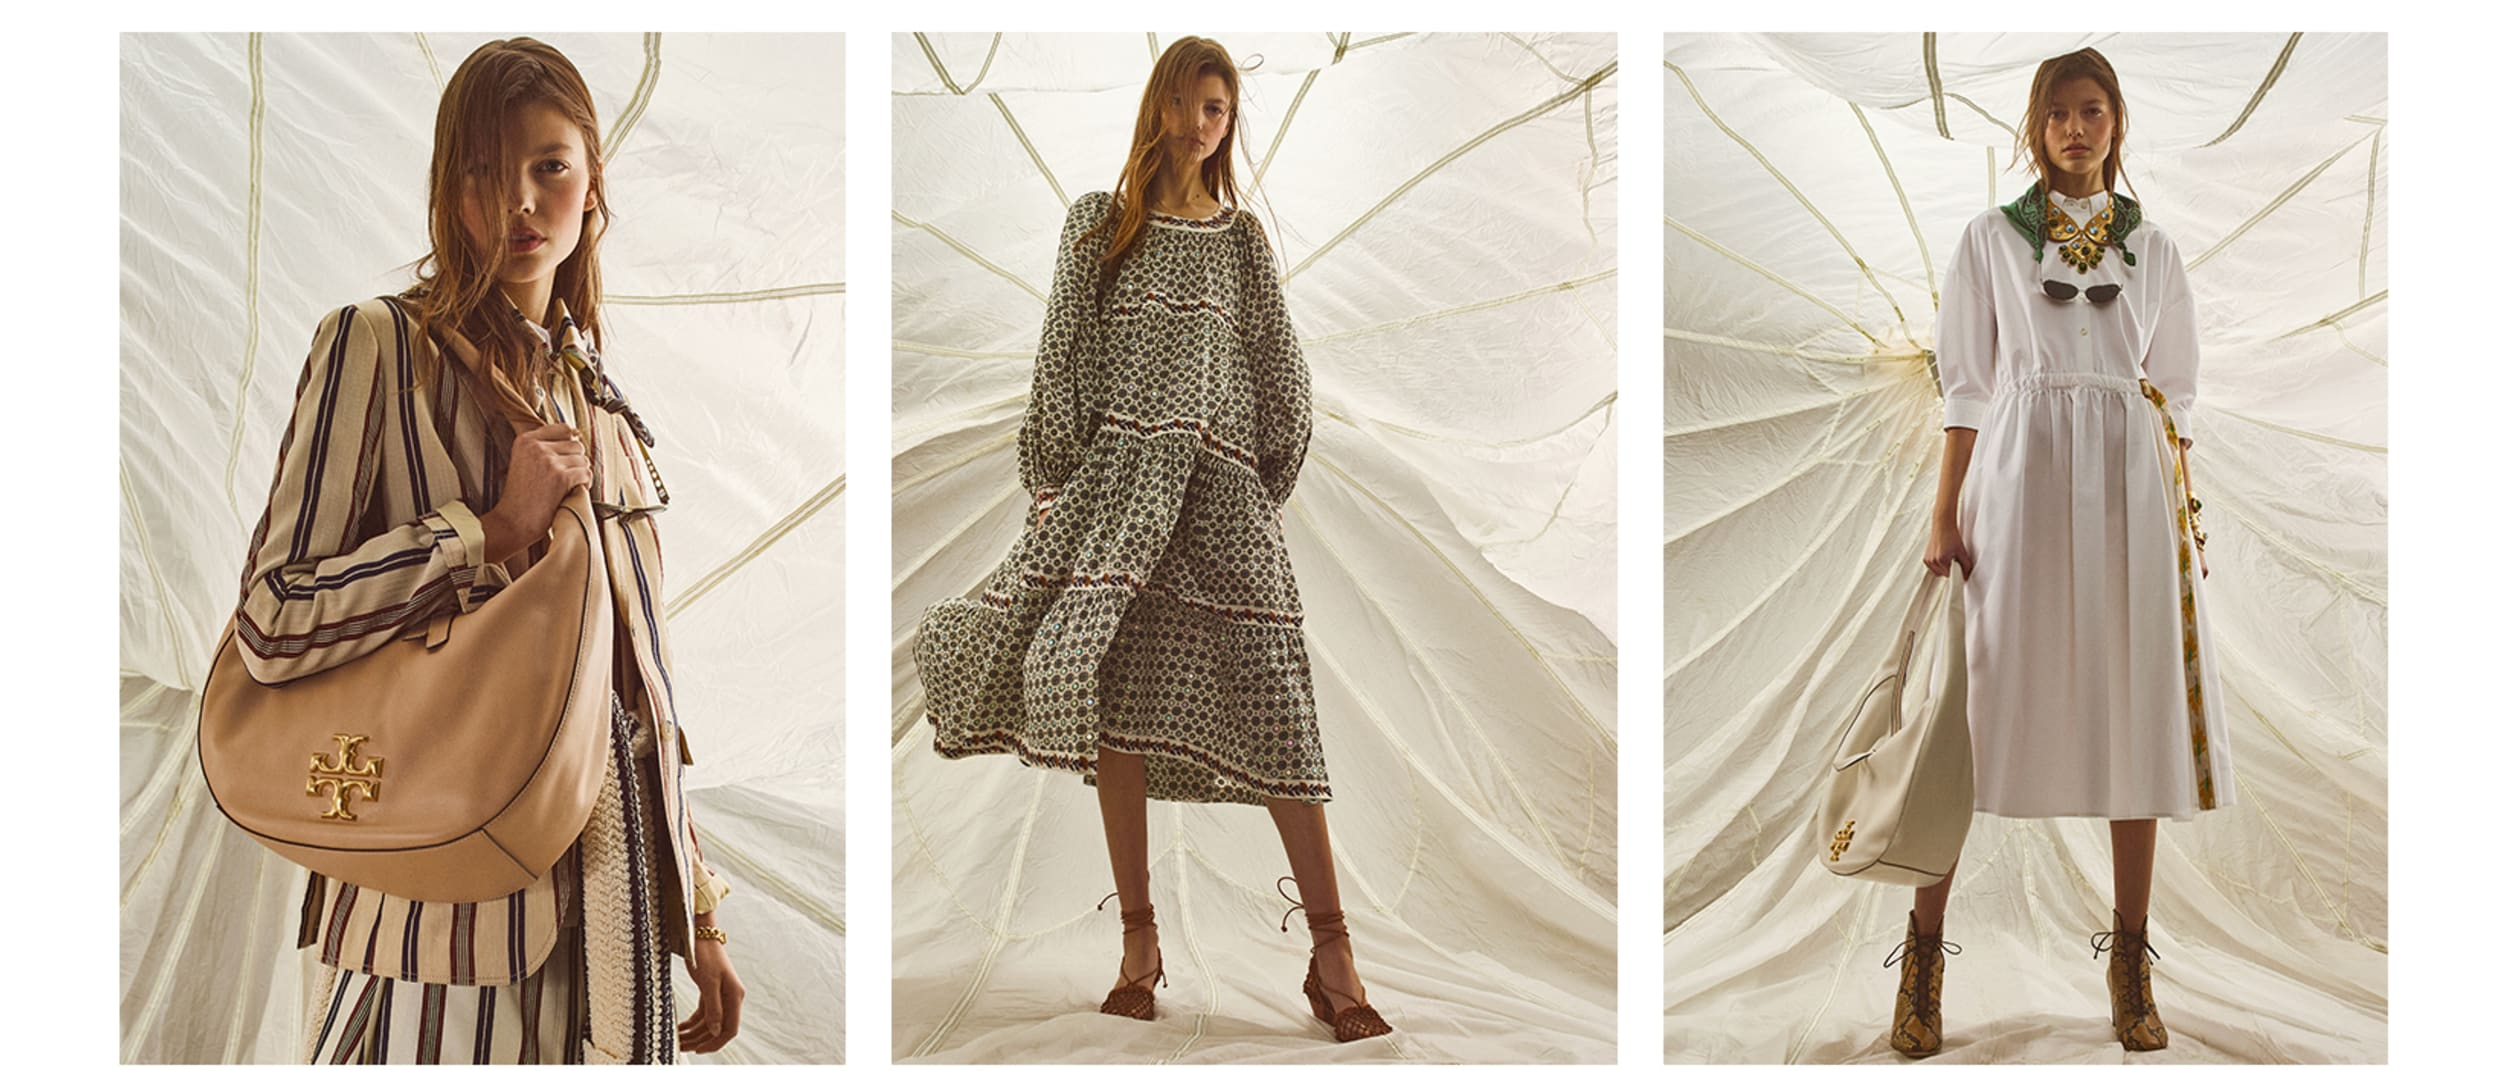 Tory Burch: Pre Fall 2020 Collection